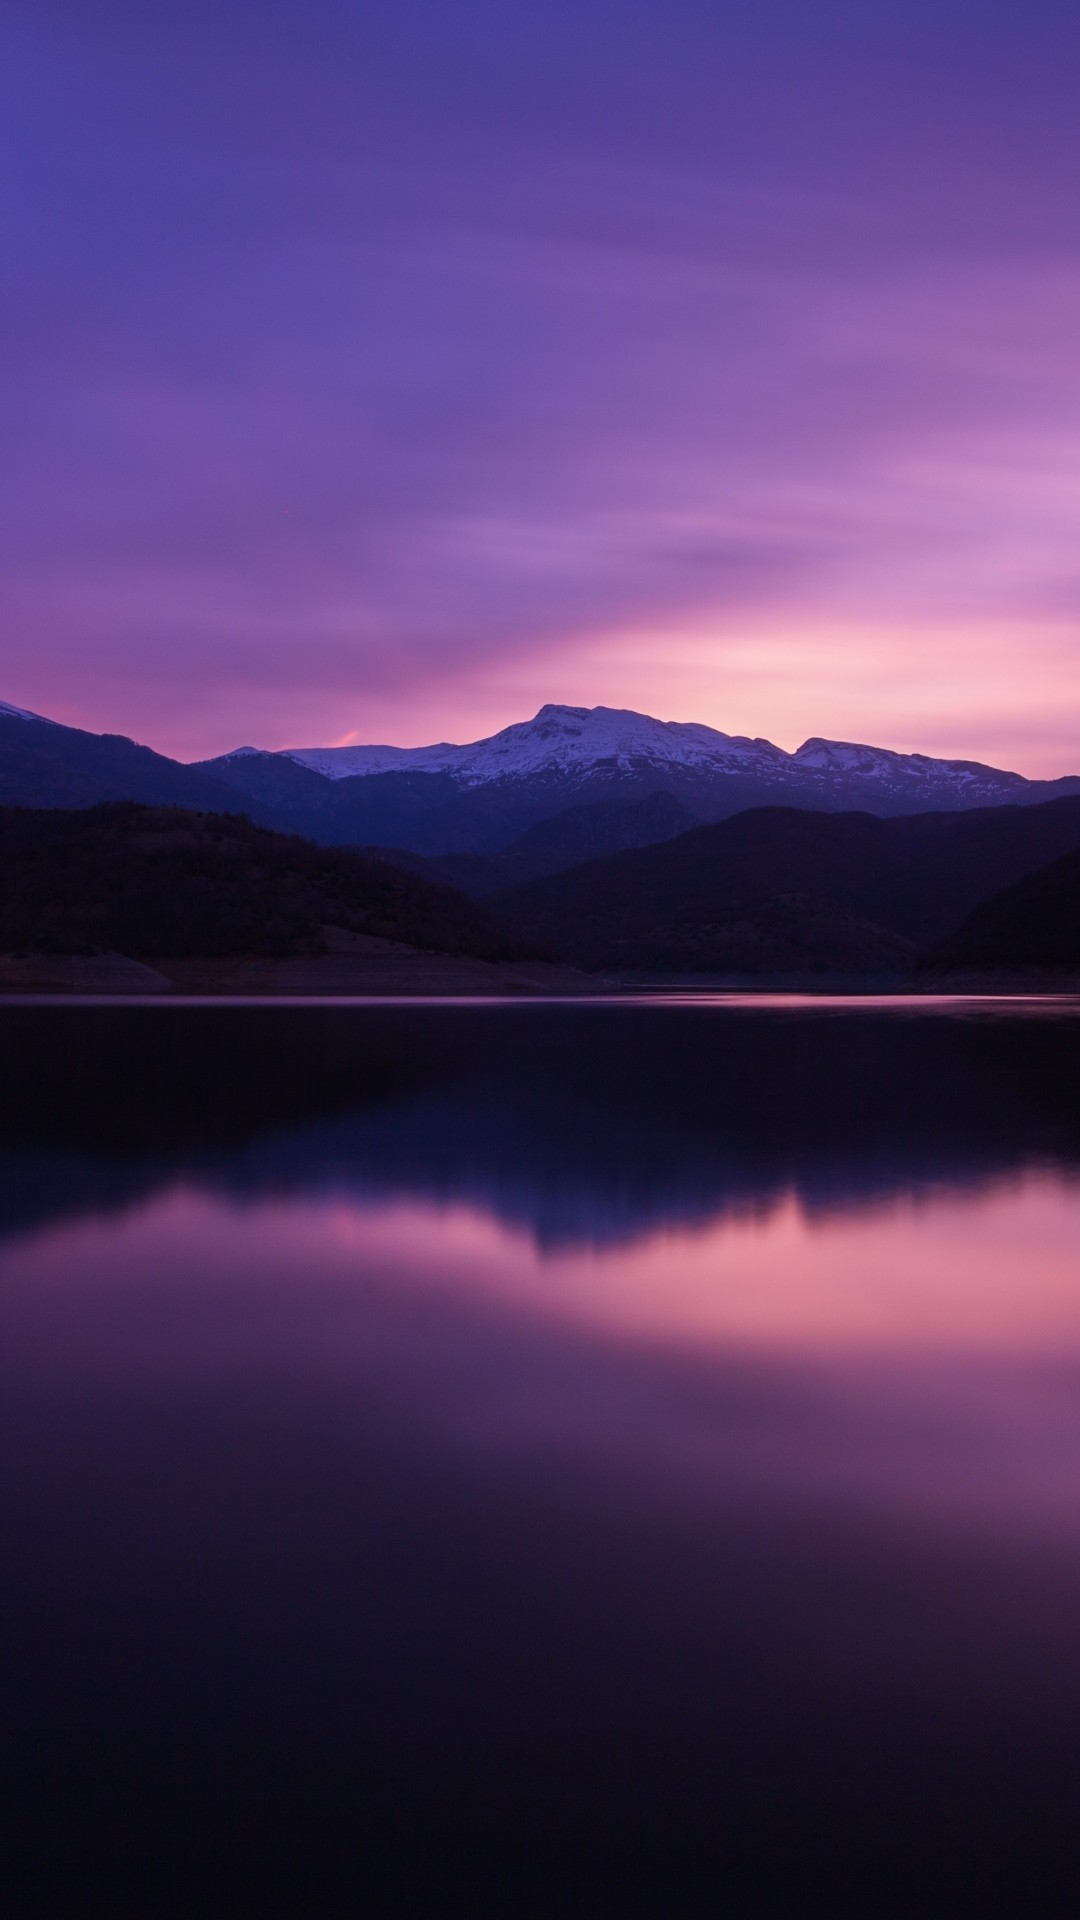 Free Mountains, Lake, Night, Reflection phone wallpaper by rissaneal